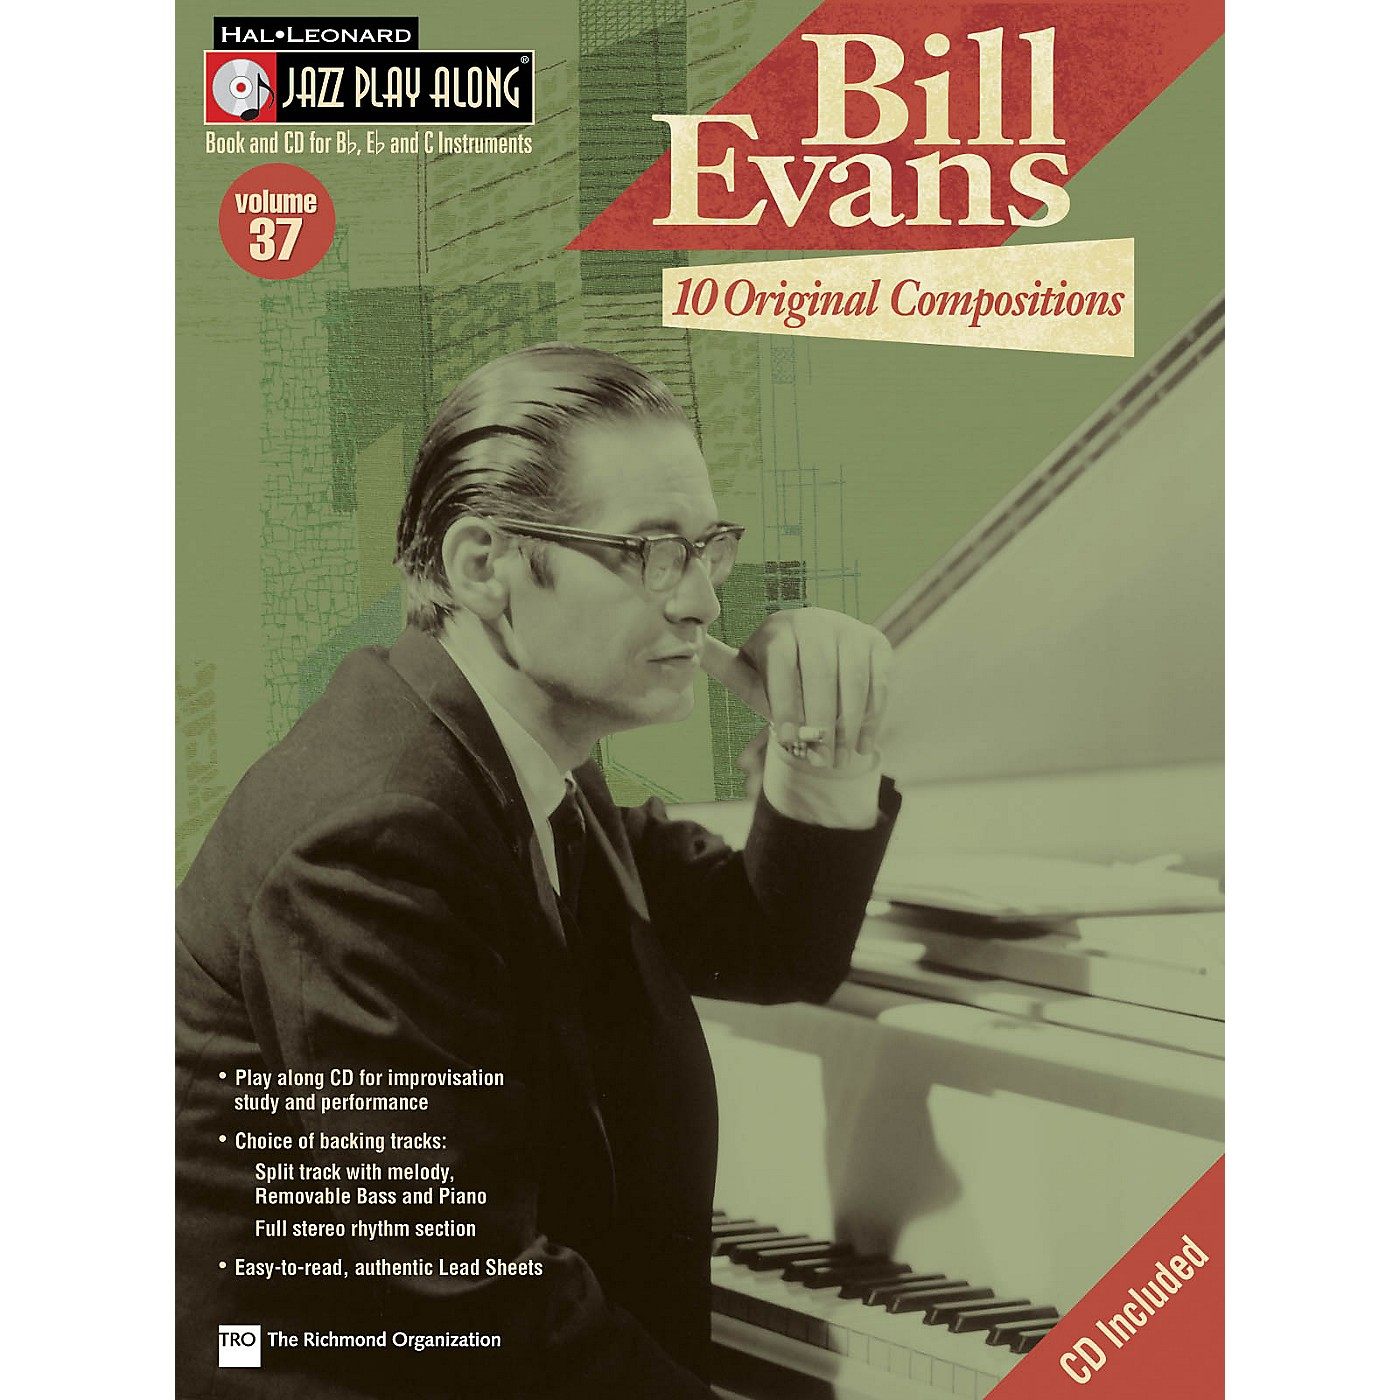 Hal Leonard Bill Evans: 10 Original Compositions Jazz Play Along Series Softcover with CD Performed by Bill Evans thumbnail